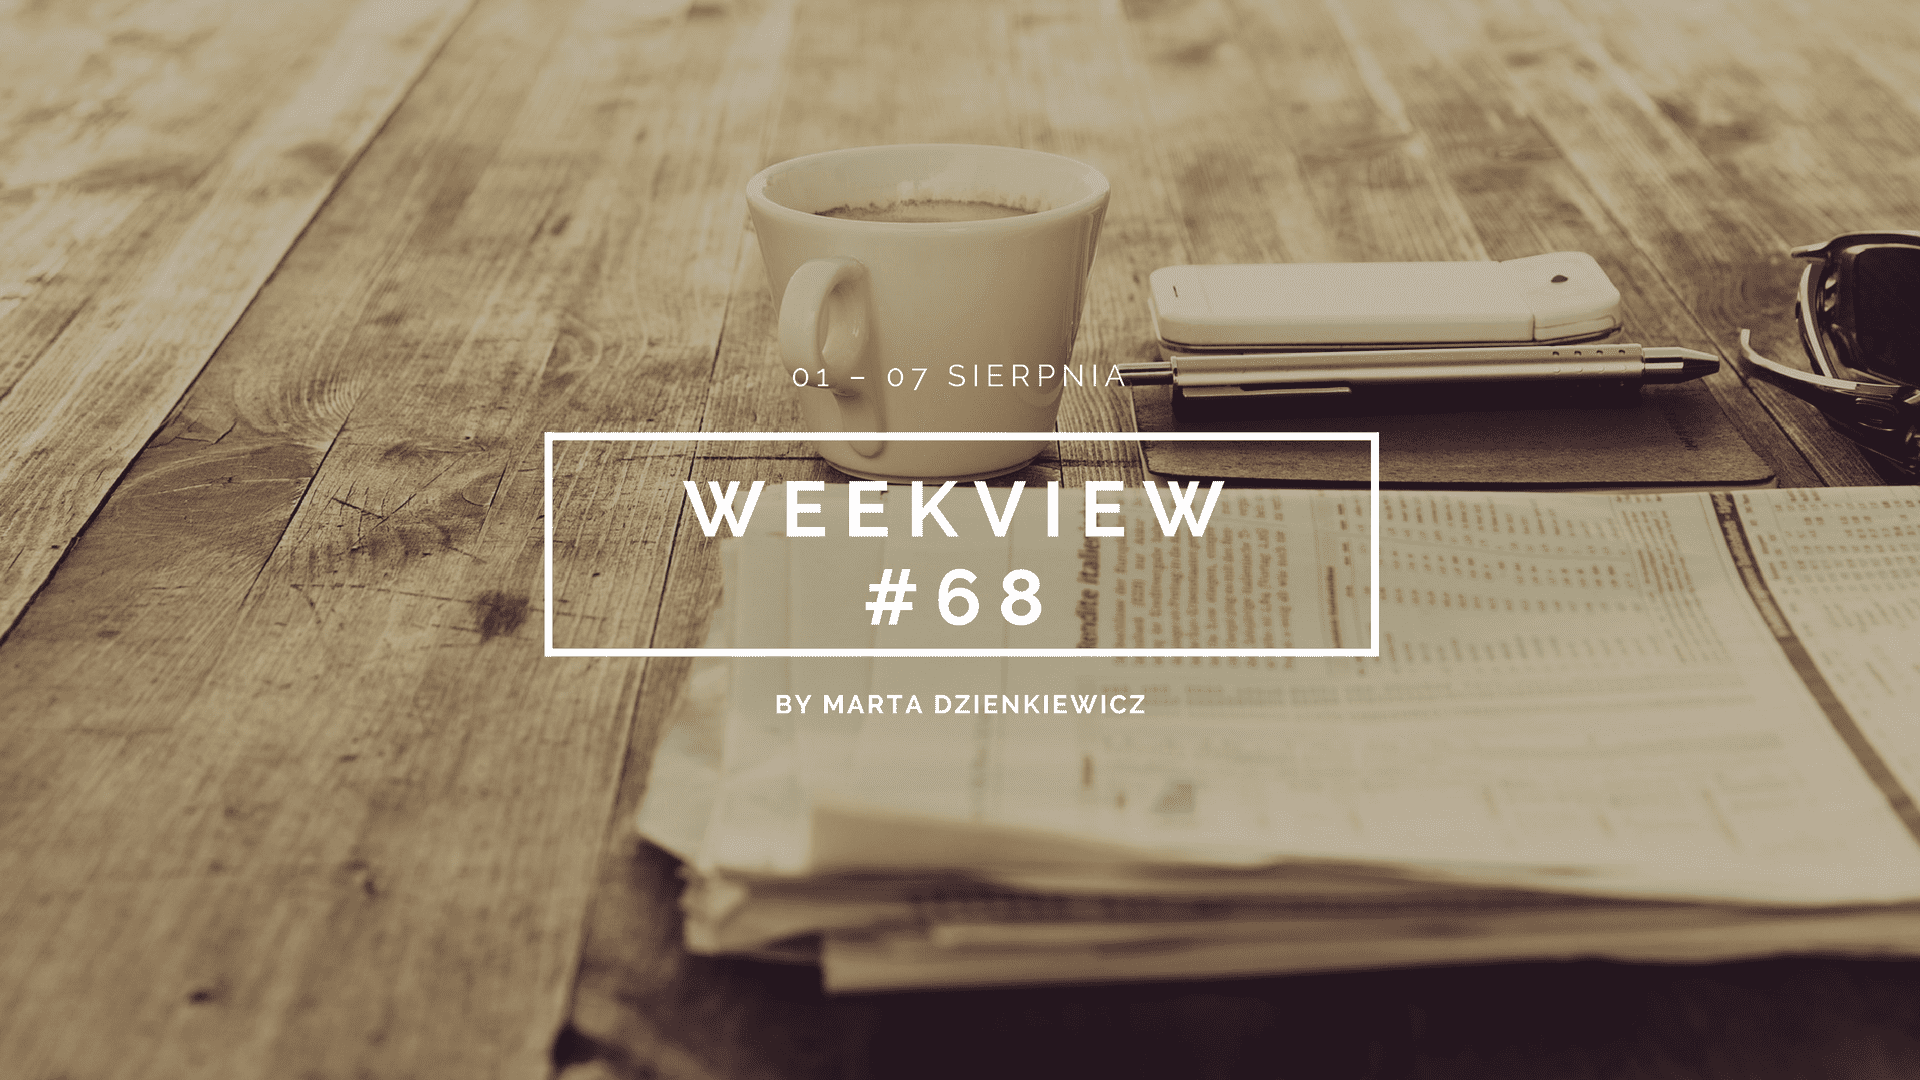 Weekview #68